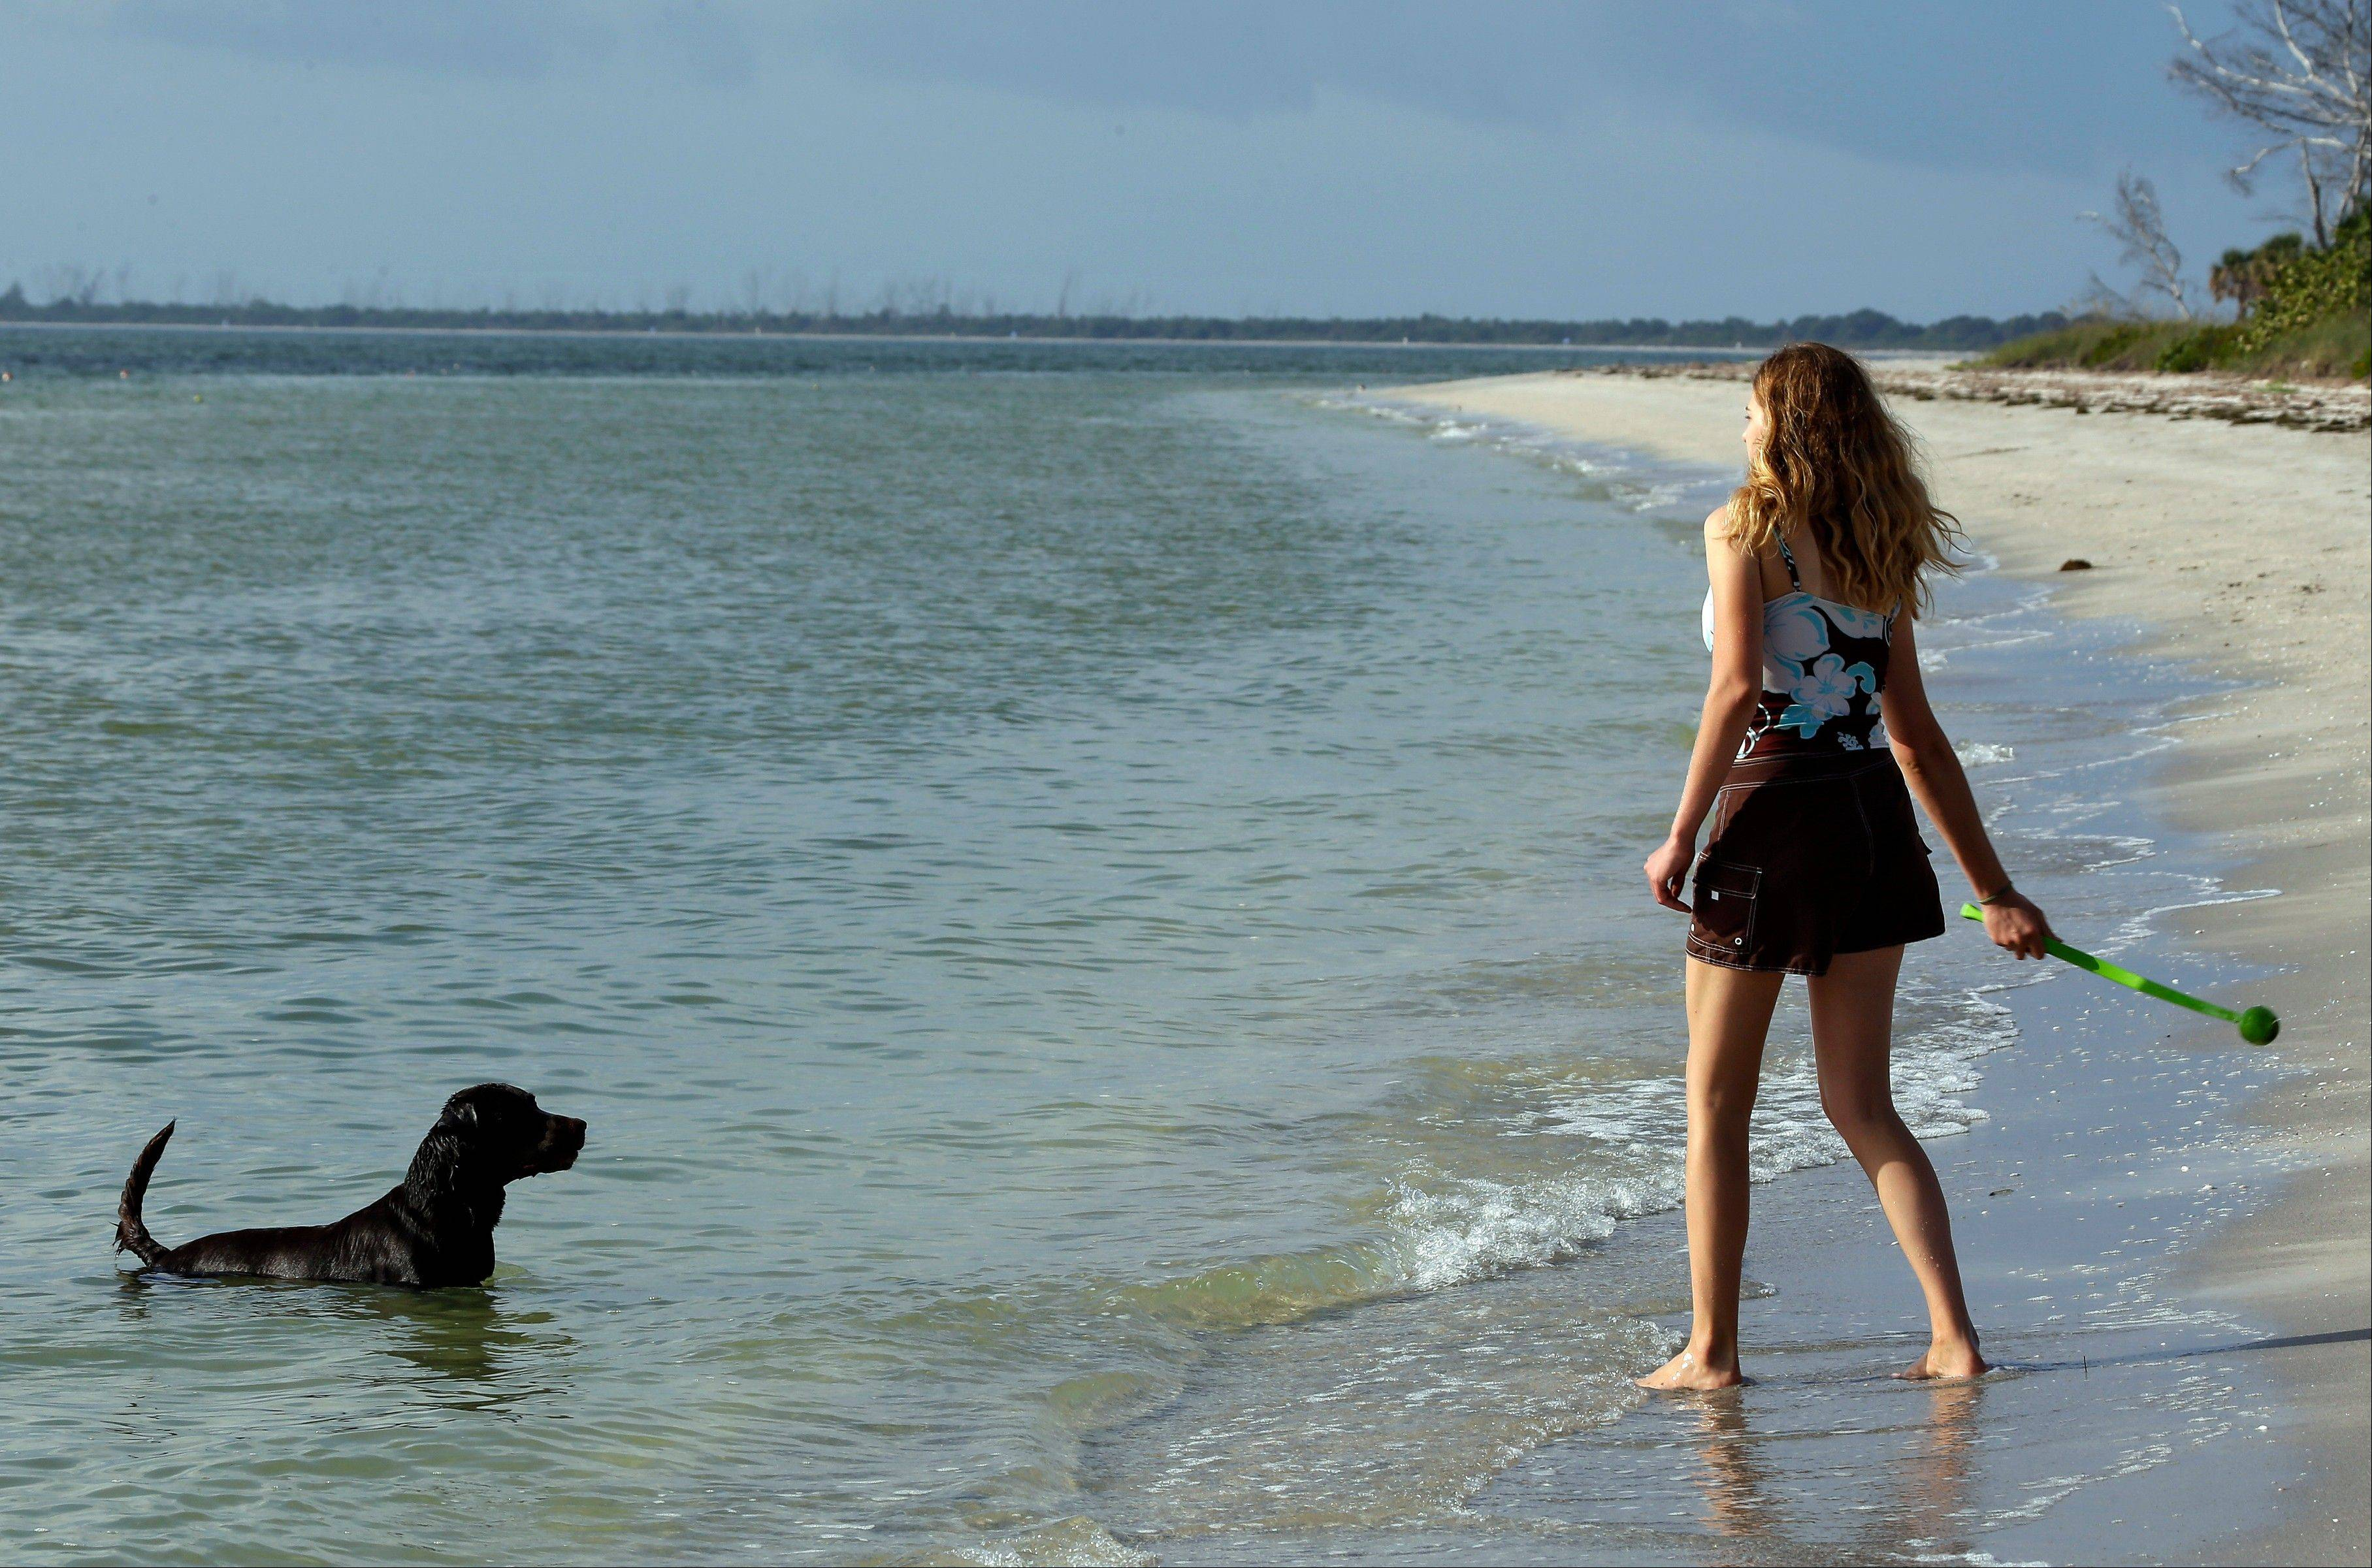 Sarah Ranes, of Safety Harbor, prepares to throw a tennis ball to her dog Strider on a dog friendly beach at Fort DeSoto Park in St. Petersburg, Fla.